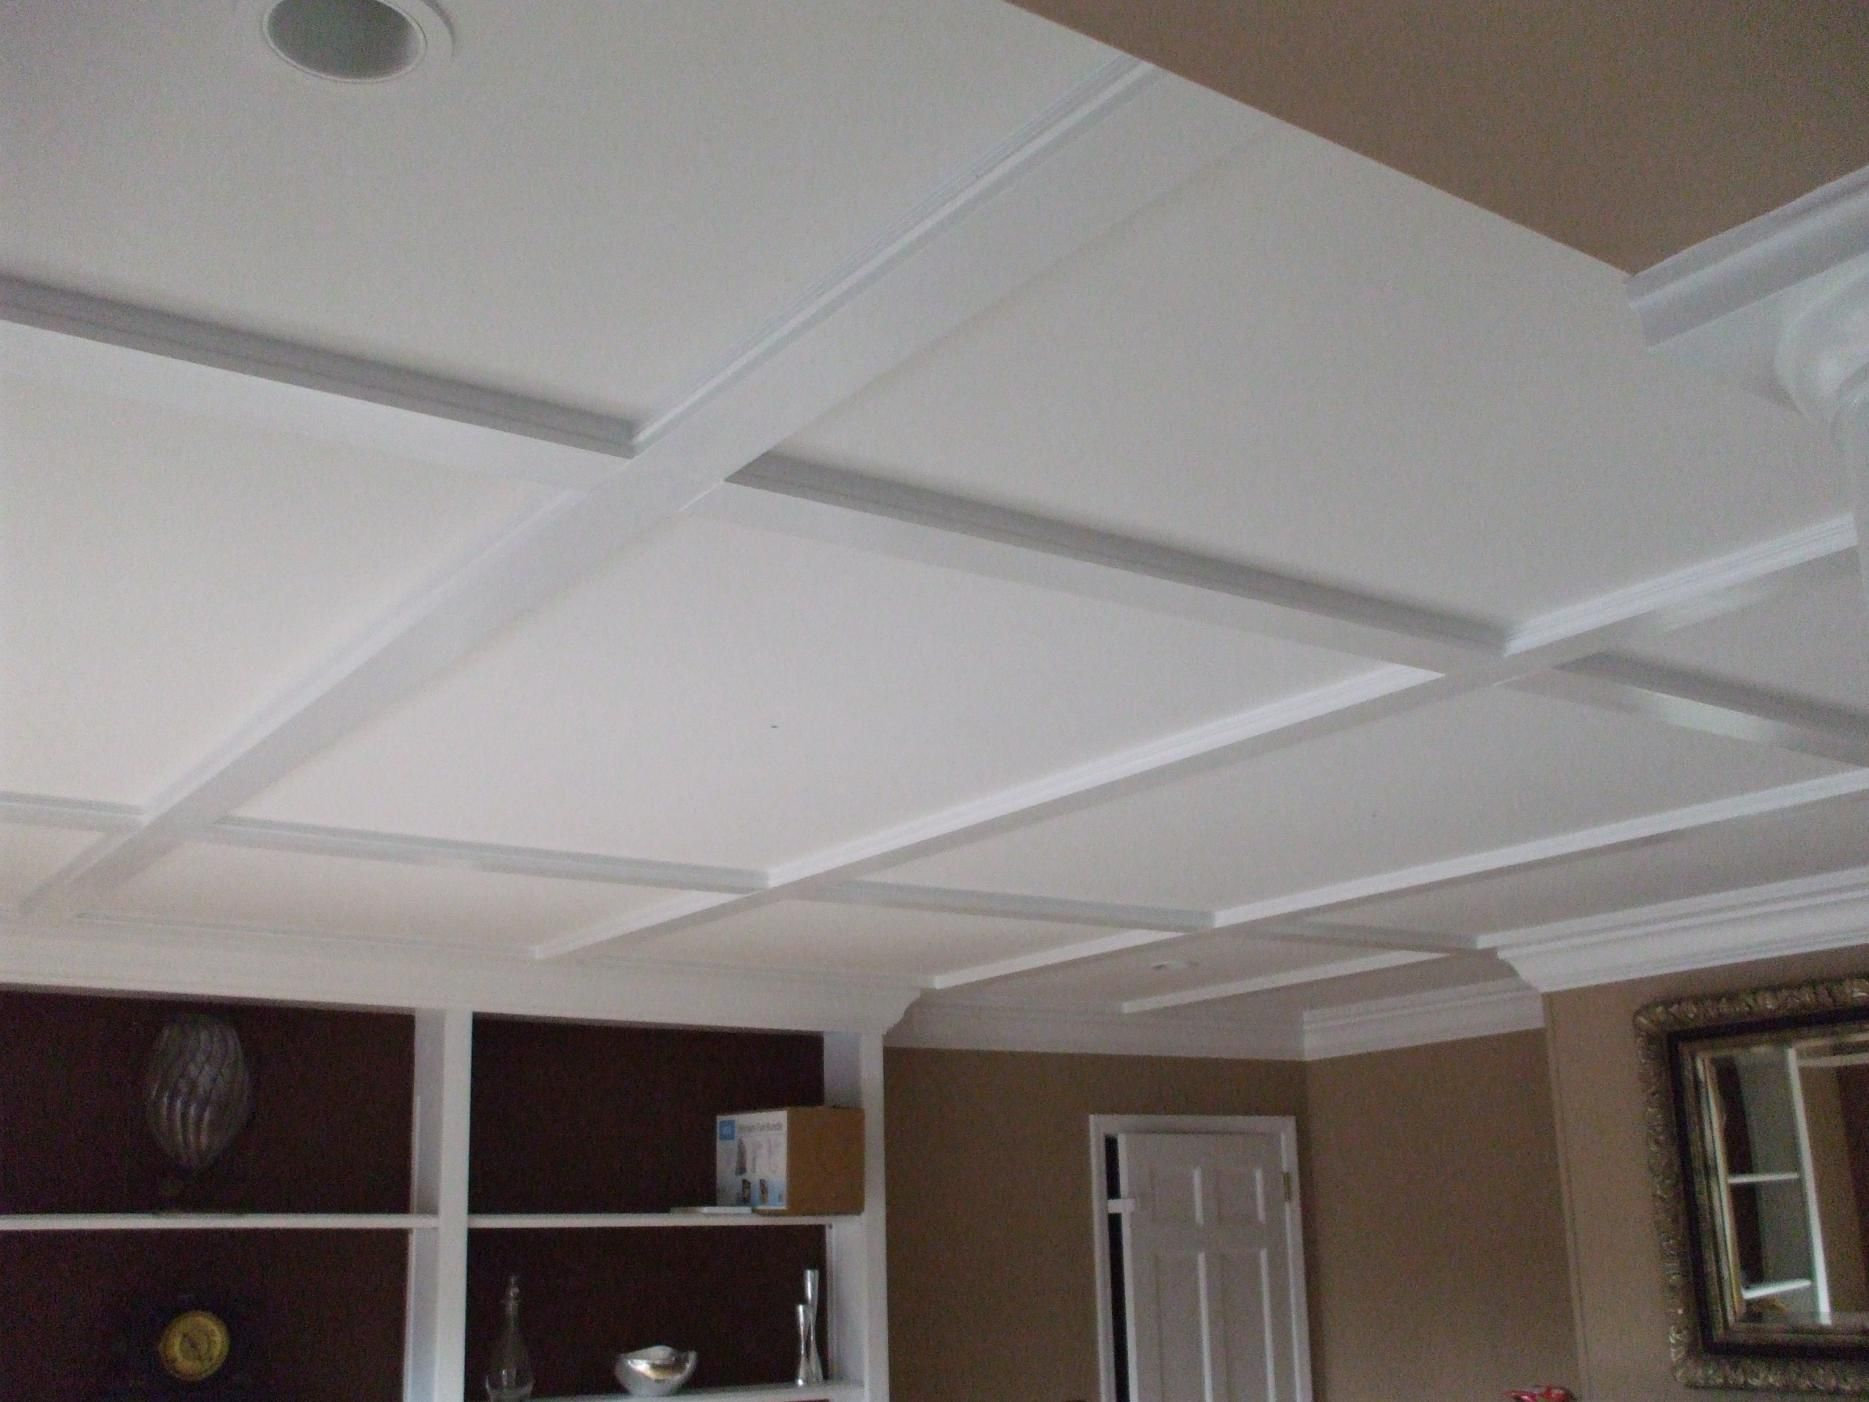 Simple Ceilings | Ceiling Ideas I Always Layout Ceiling With A Simple Cad  Program Home . WeihnachtenNiedrige Decke KellerDeckenbalkenDrop ...